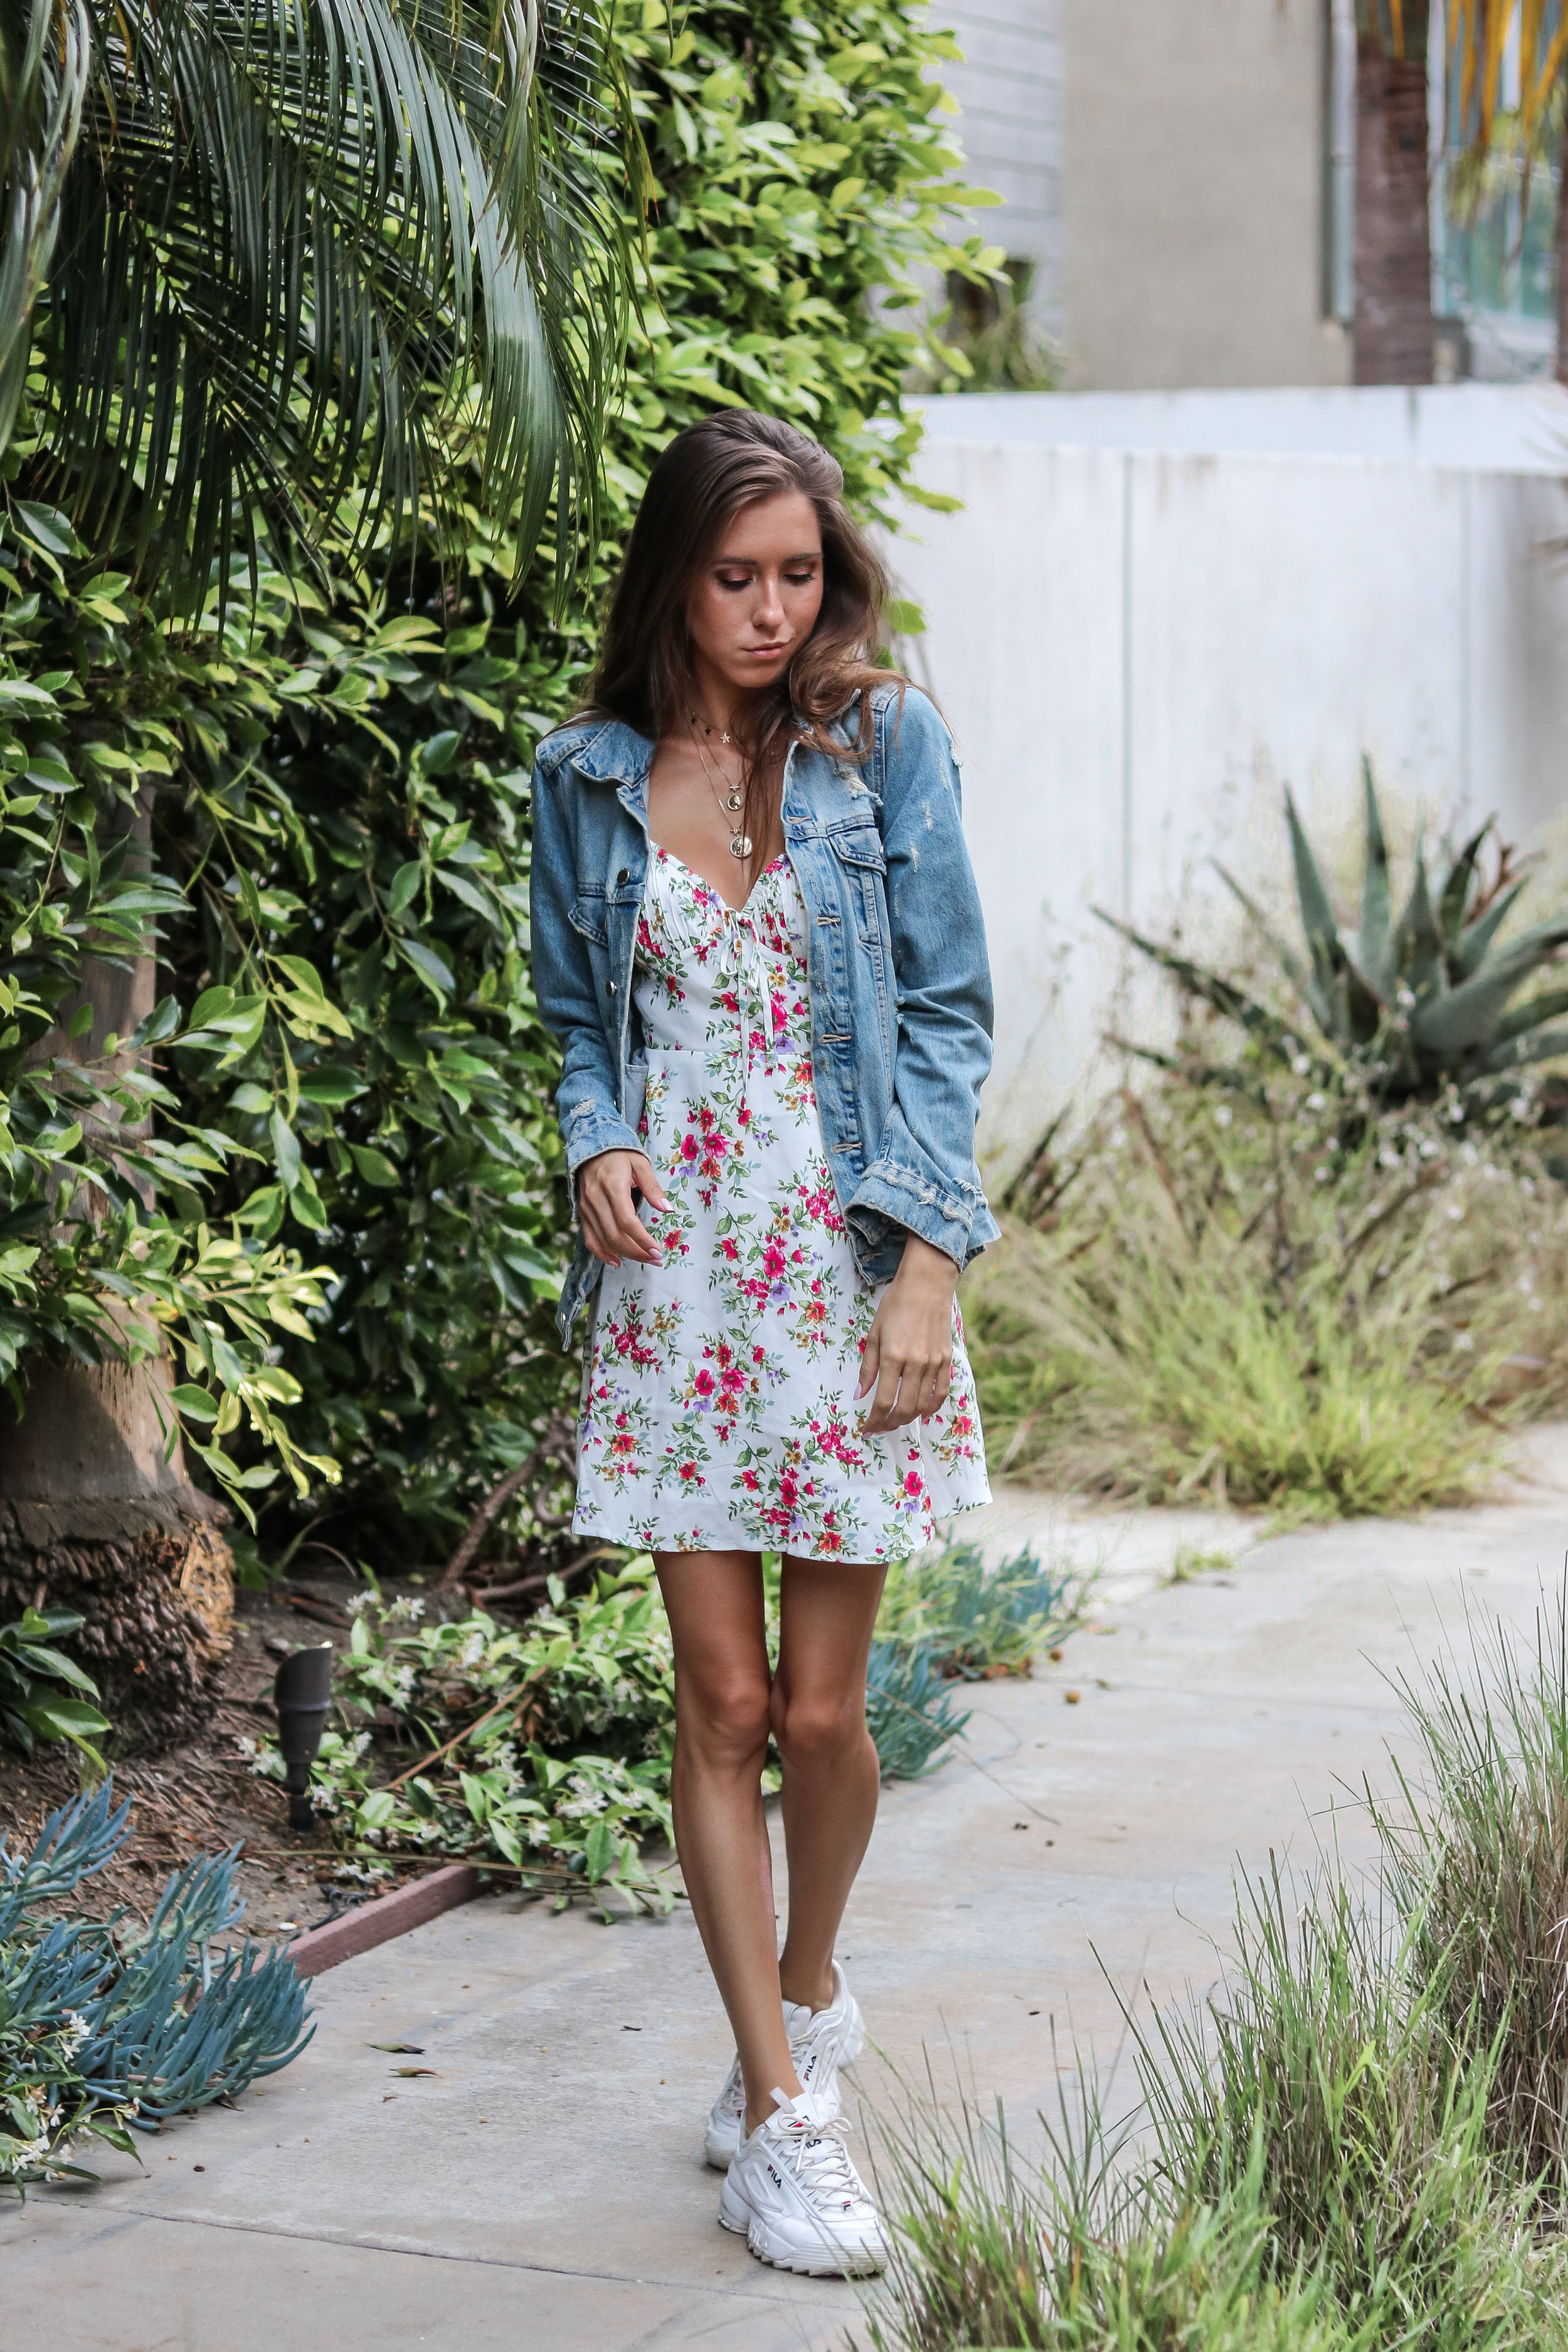 The Hungarian Brunette  3 ways to wear a denim jacket for summer - casual feminine look - floral mini dress and sneakers